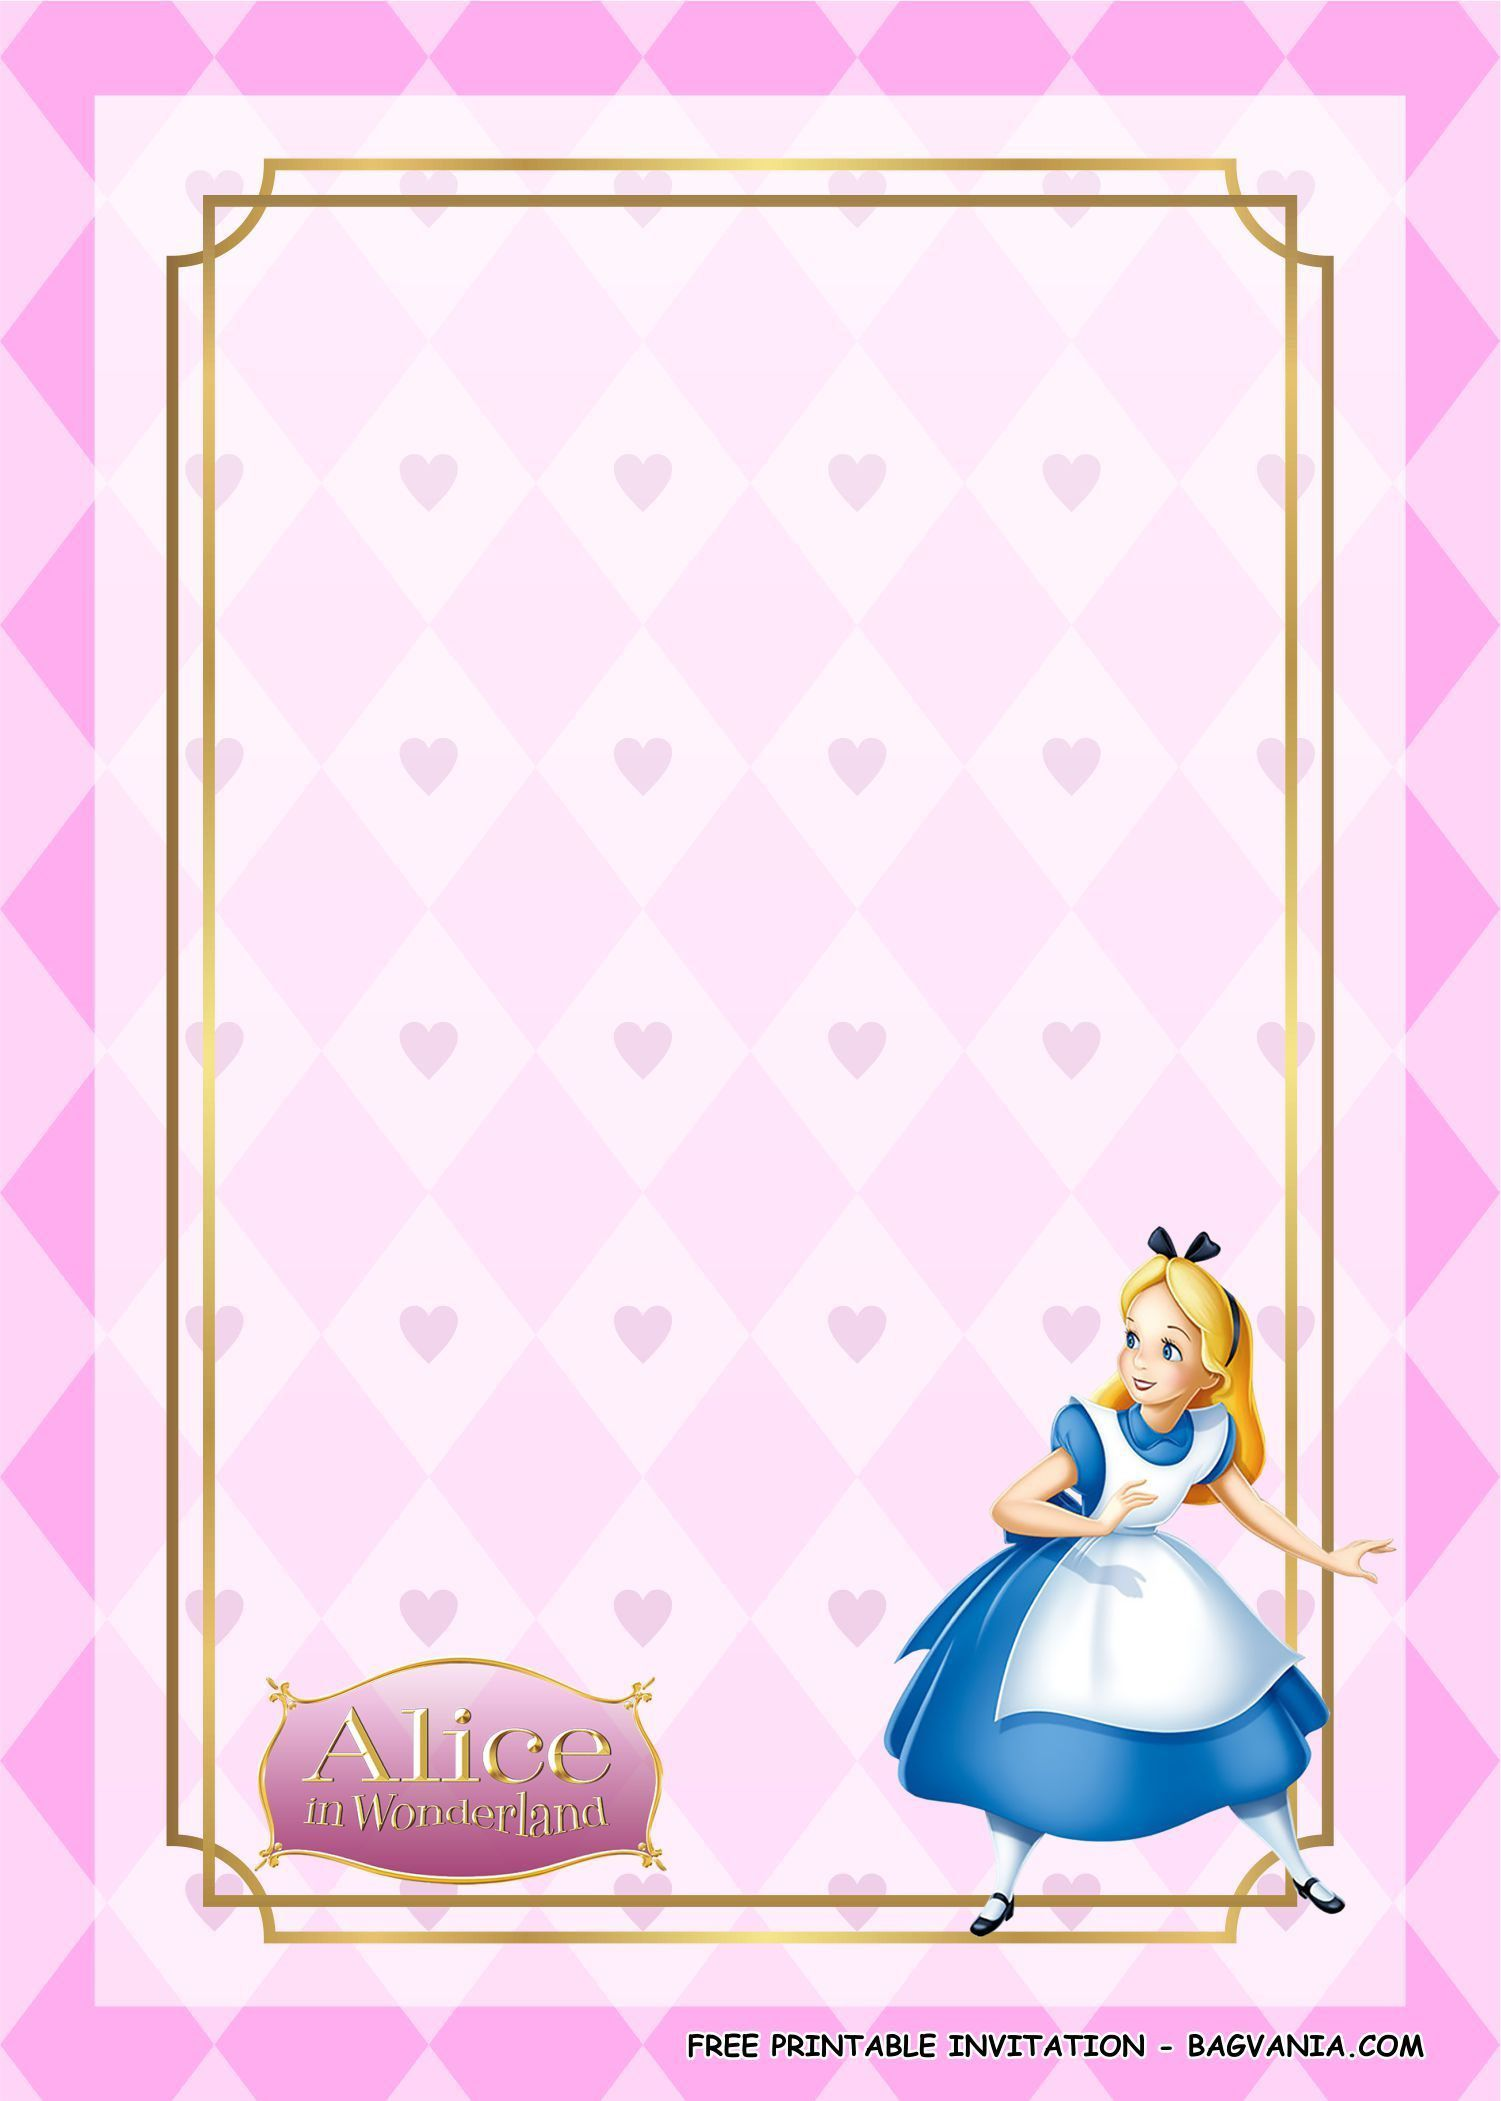 006 Remarkable Alice In Wonderland Party Template High Def  Templates Invitation FreeFull